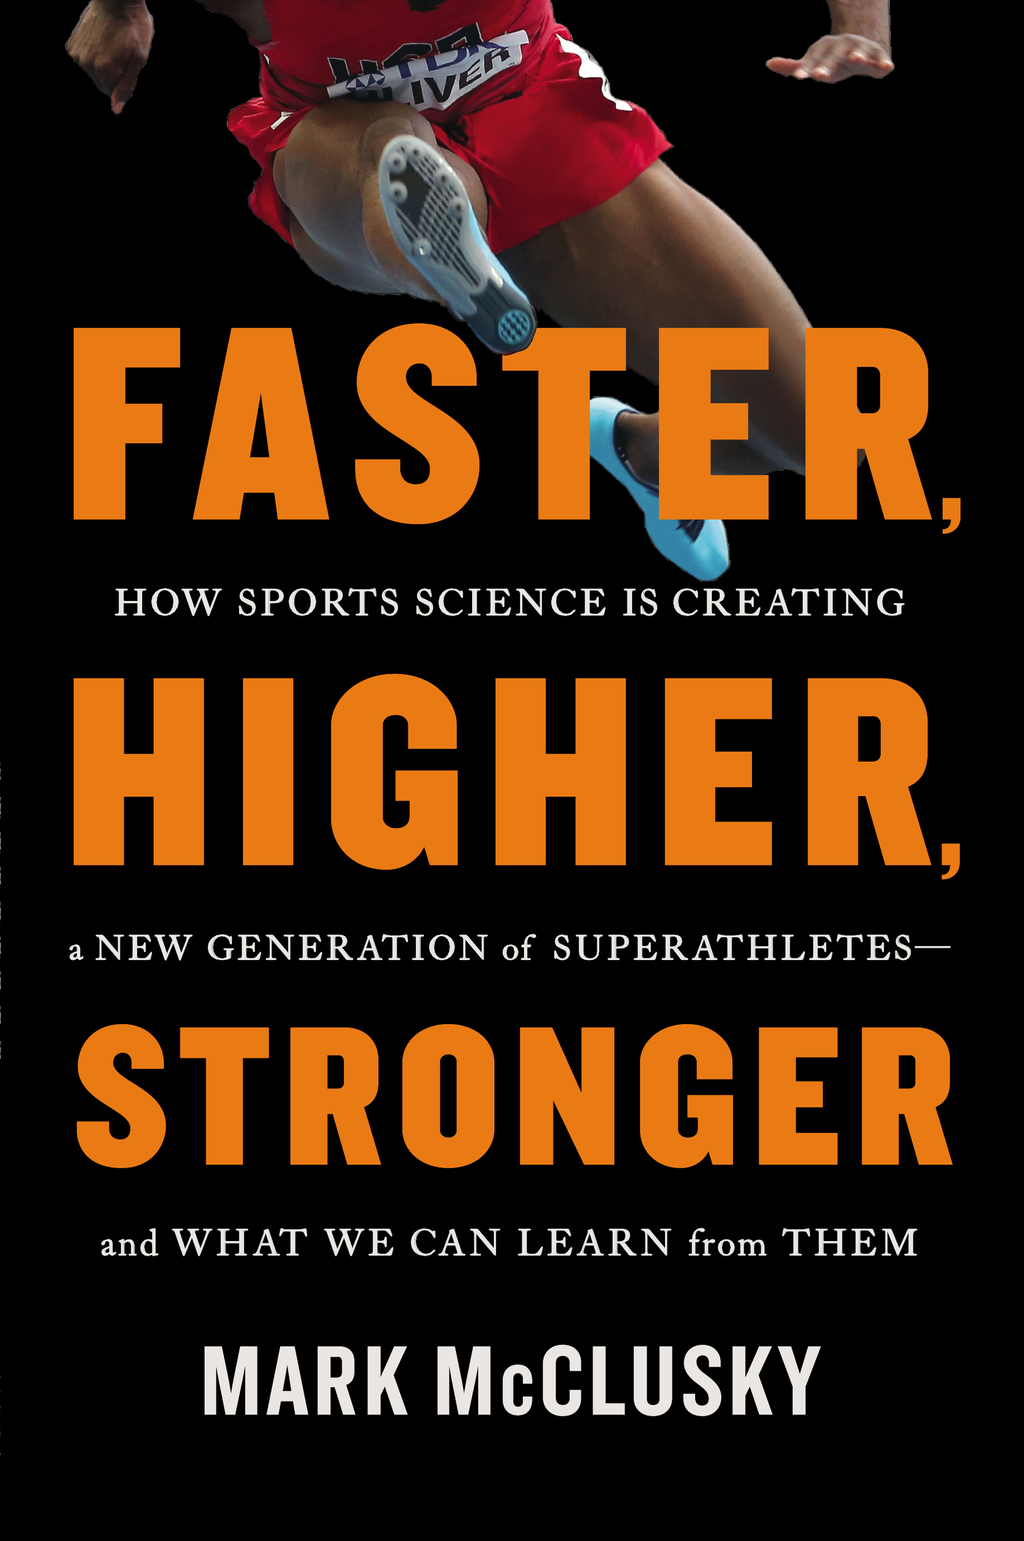 Faster,  Higher,  Stronger How Sports Science Is Creating a New Generation of Superathletes--and What We Can Learn from Them